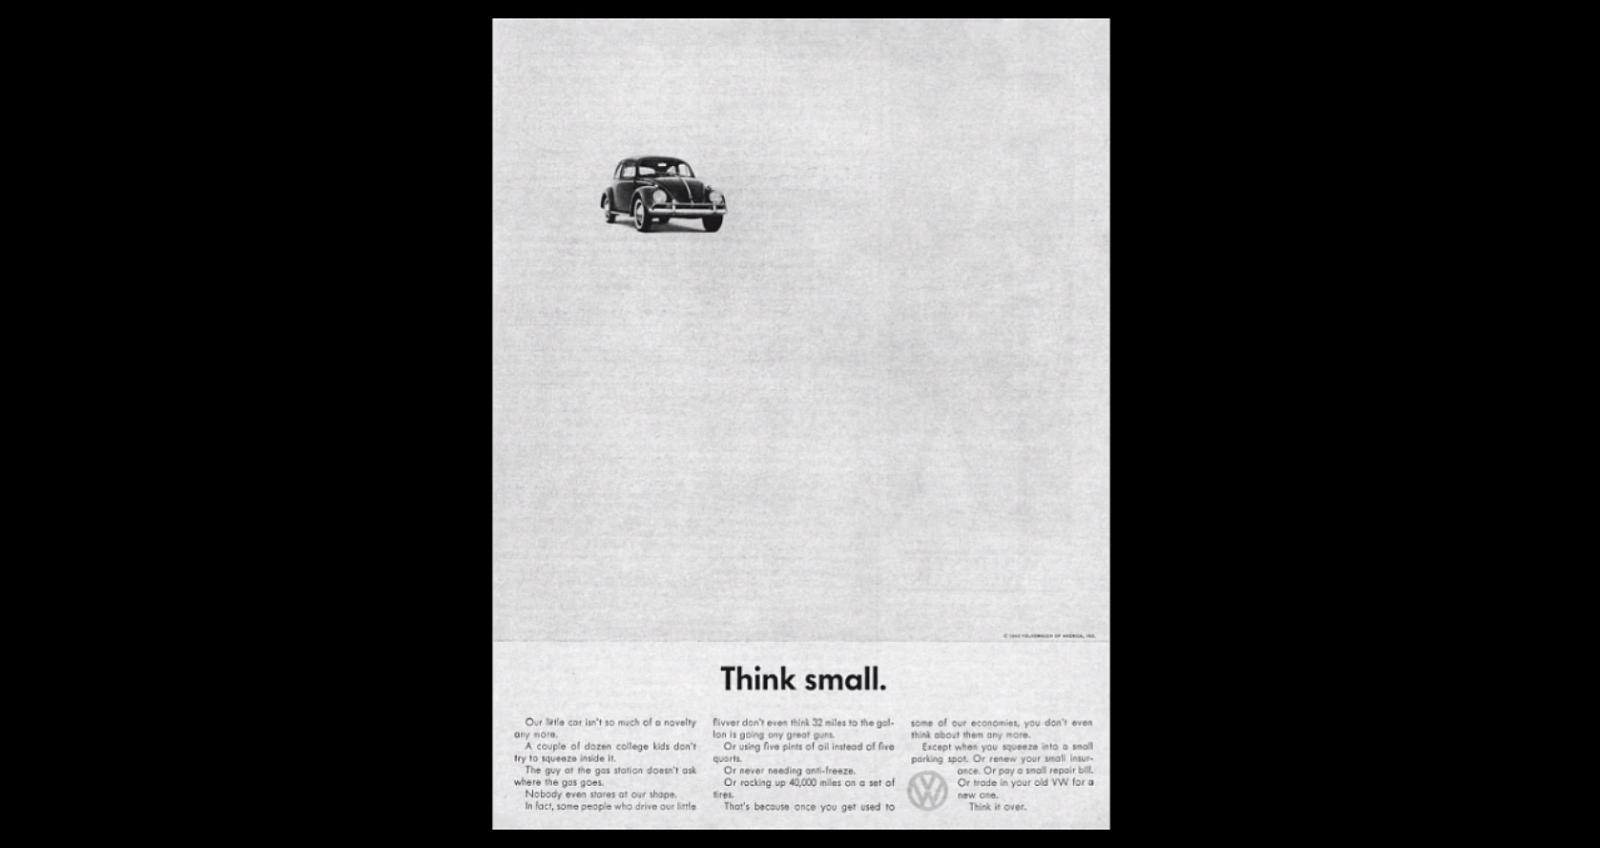 vw-think-small-ads-5